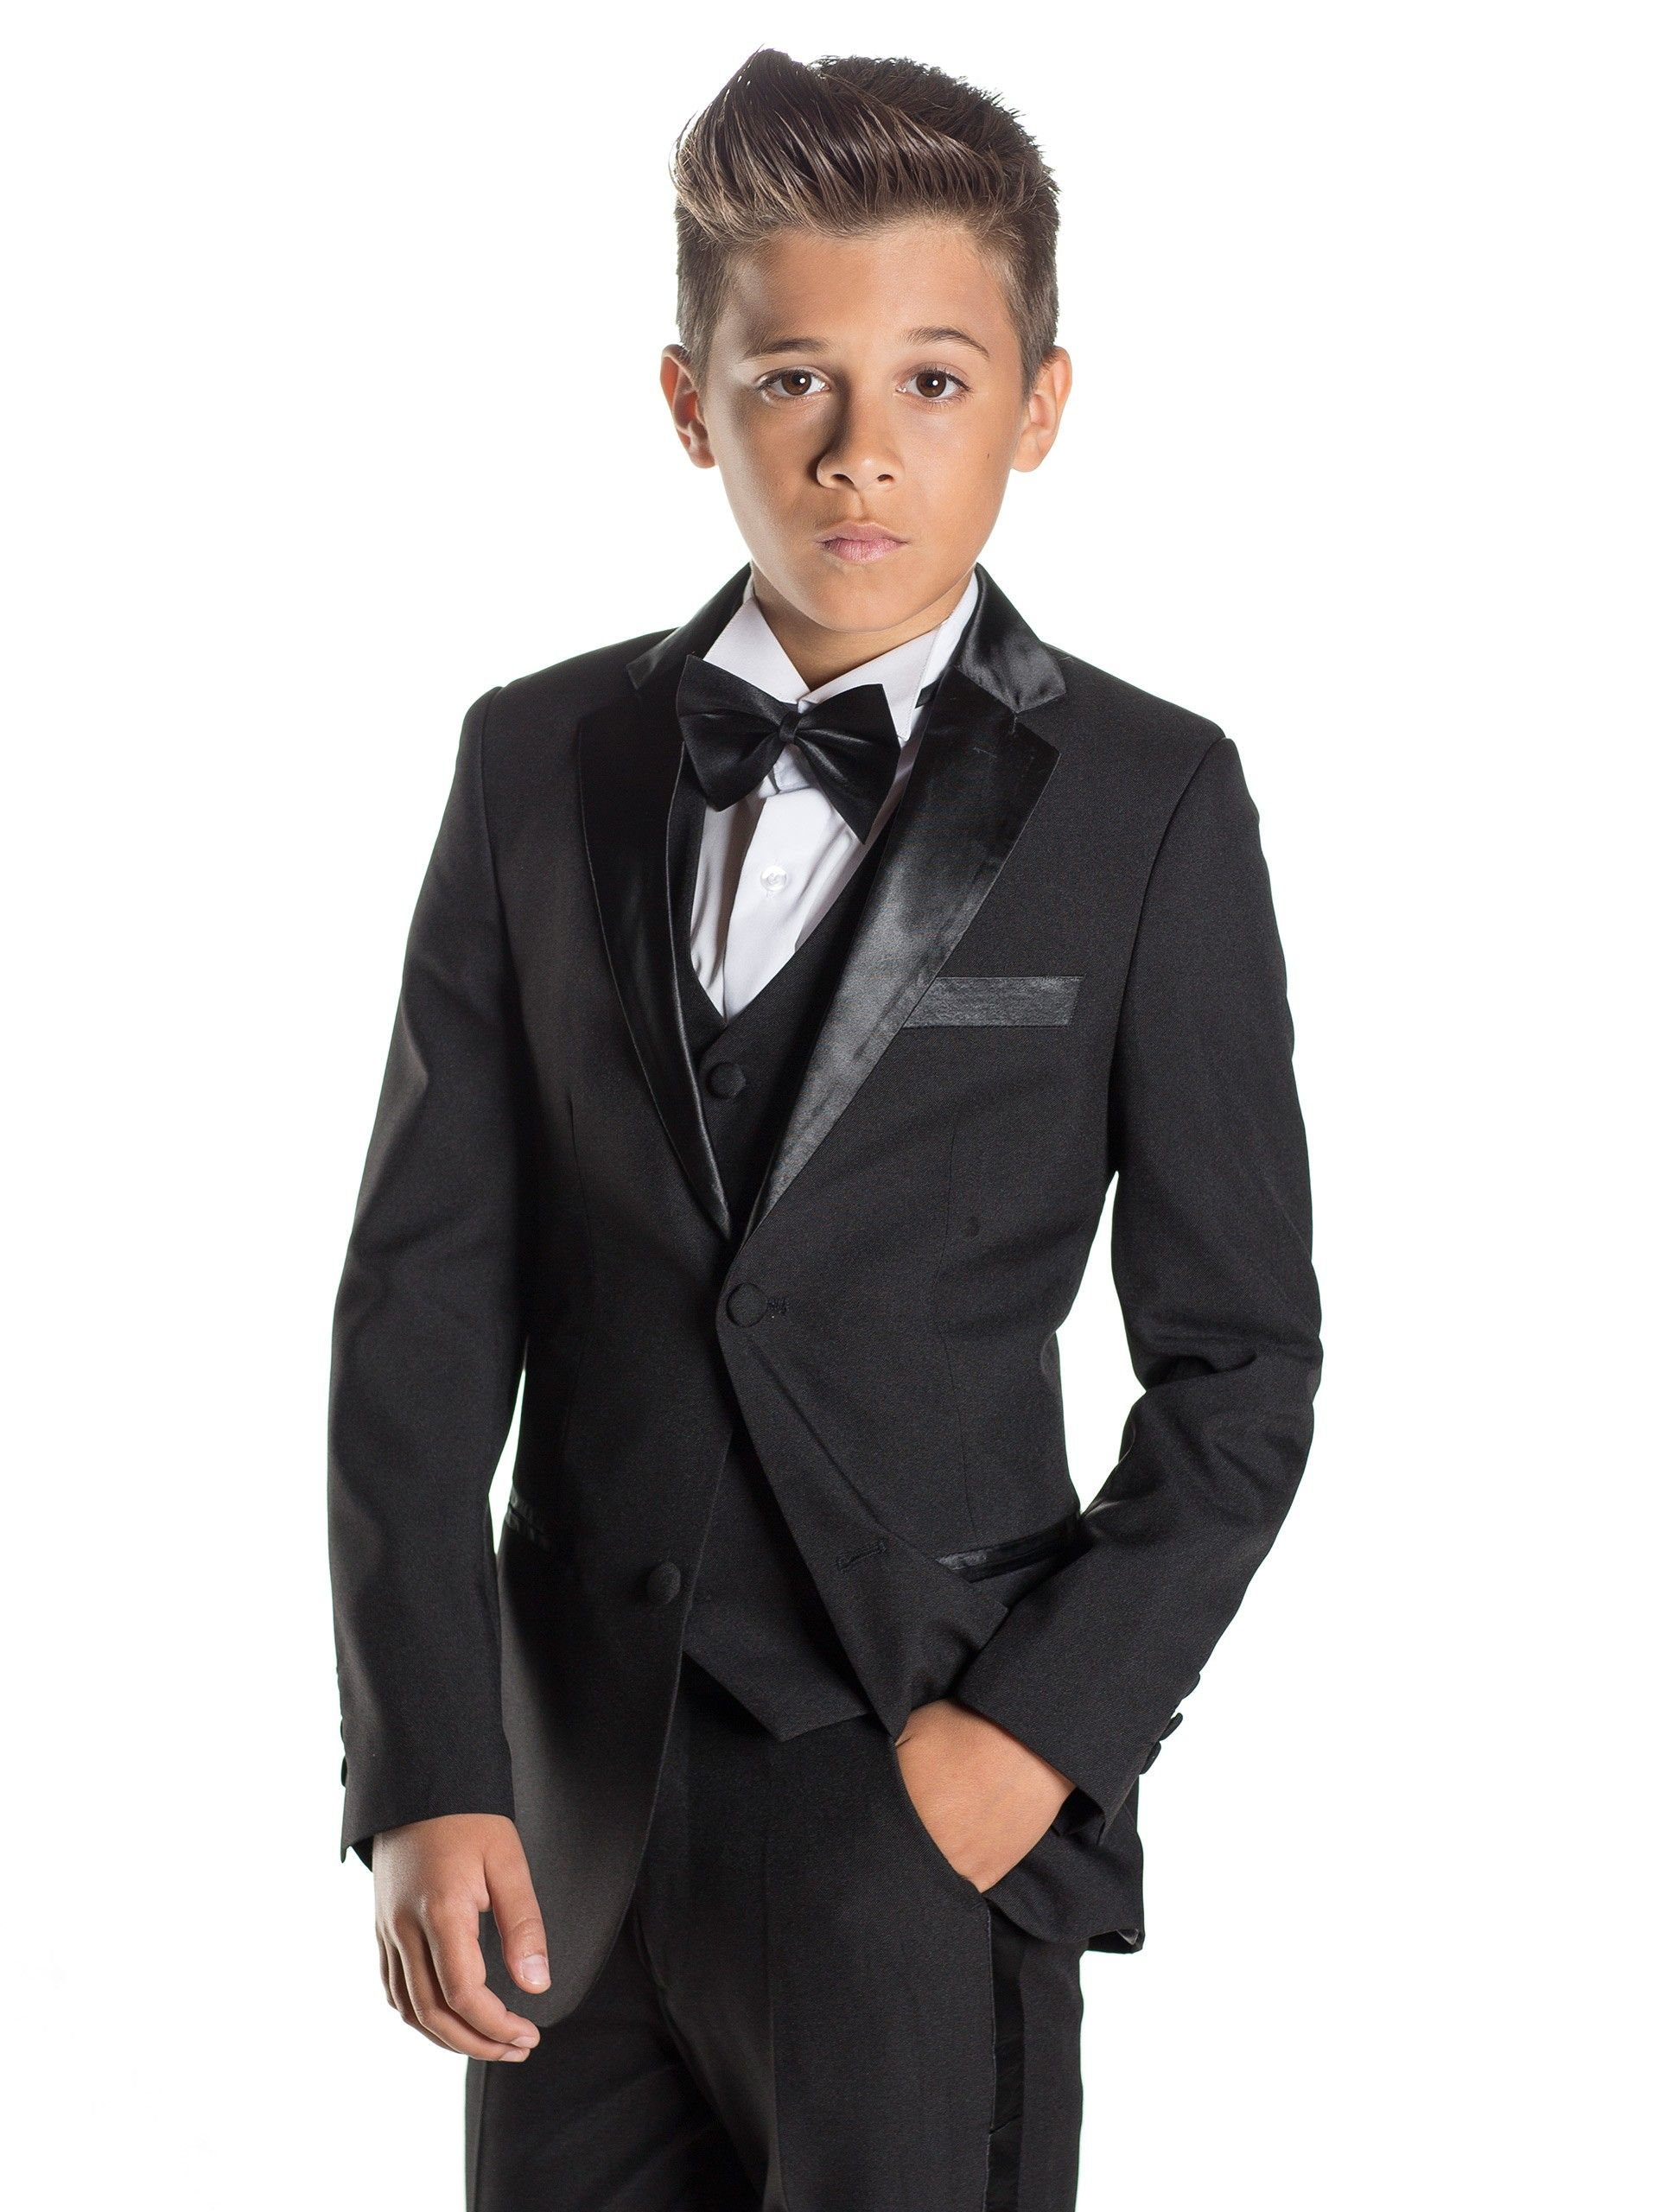 Boys black tuxedo - James | Black tuxedos, Boys black suit and Wedding